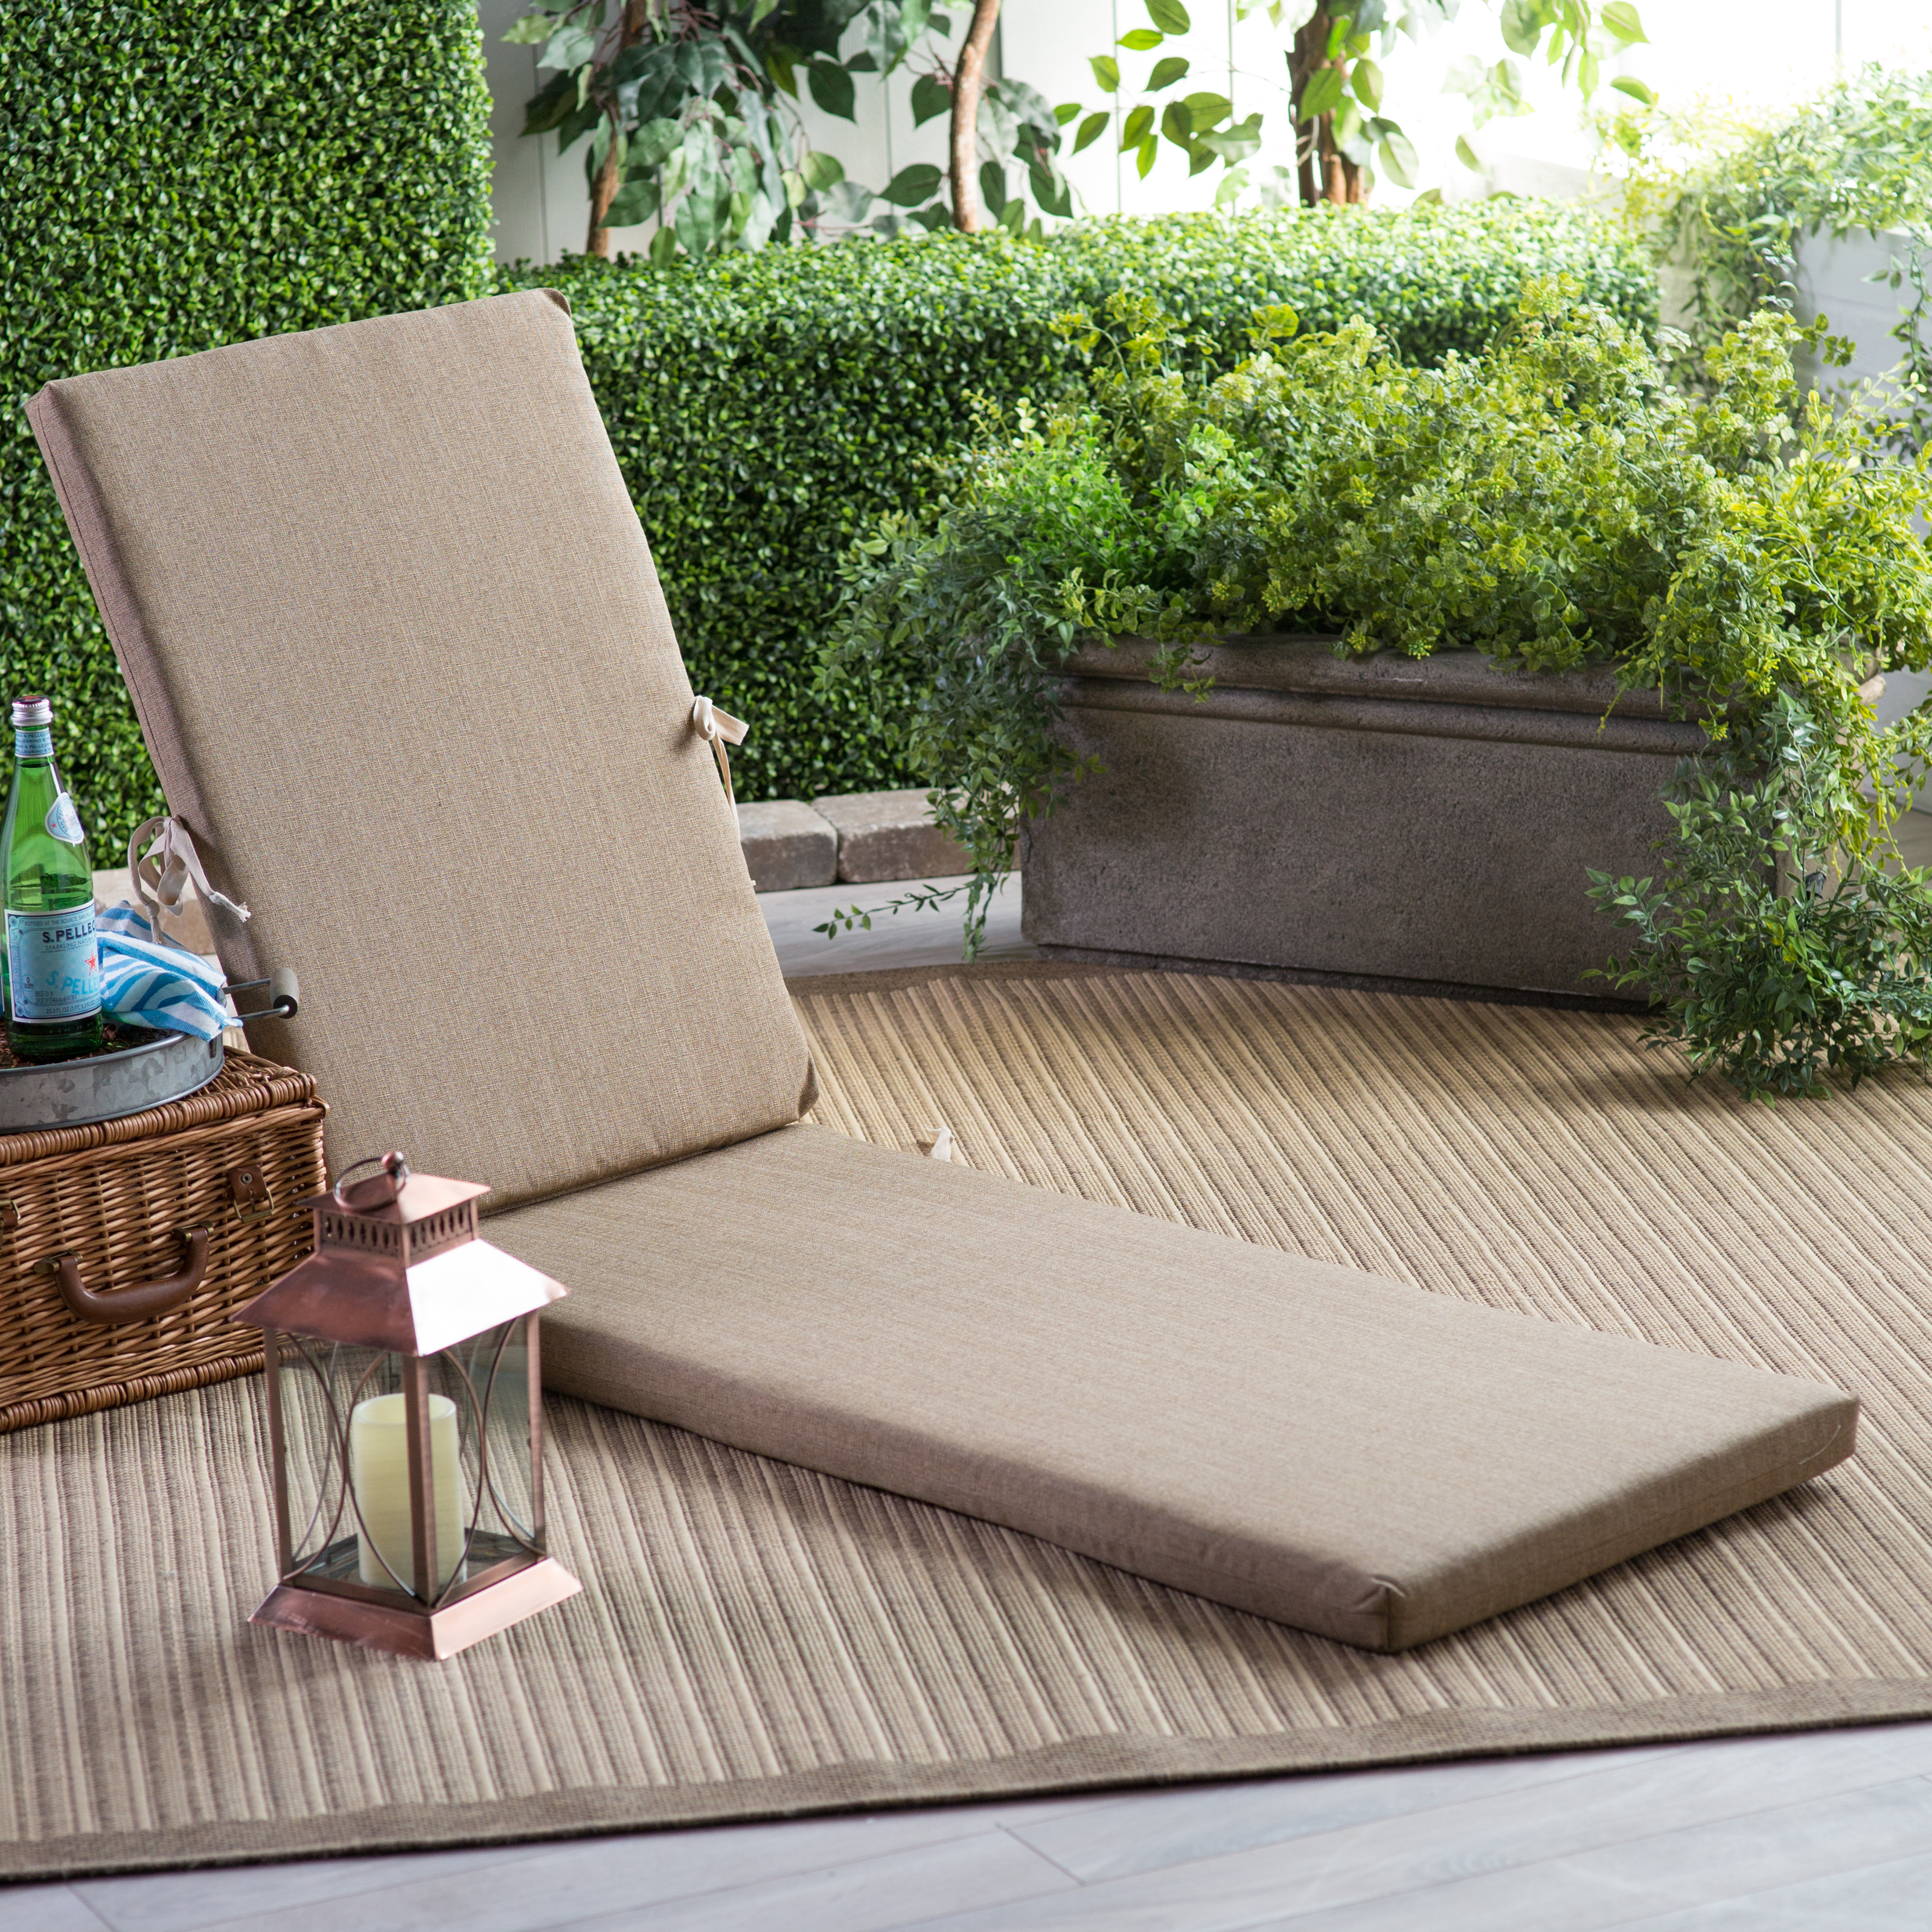 Sunbrella outdoor chaise lounge cushions chairs seating for Alyssa outdoor chaise